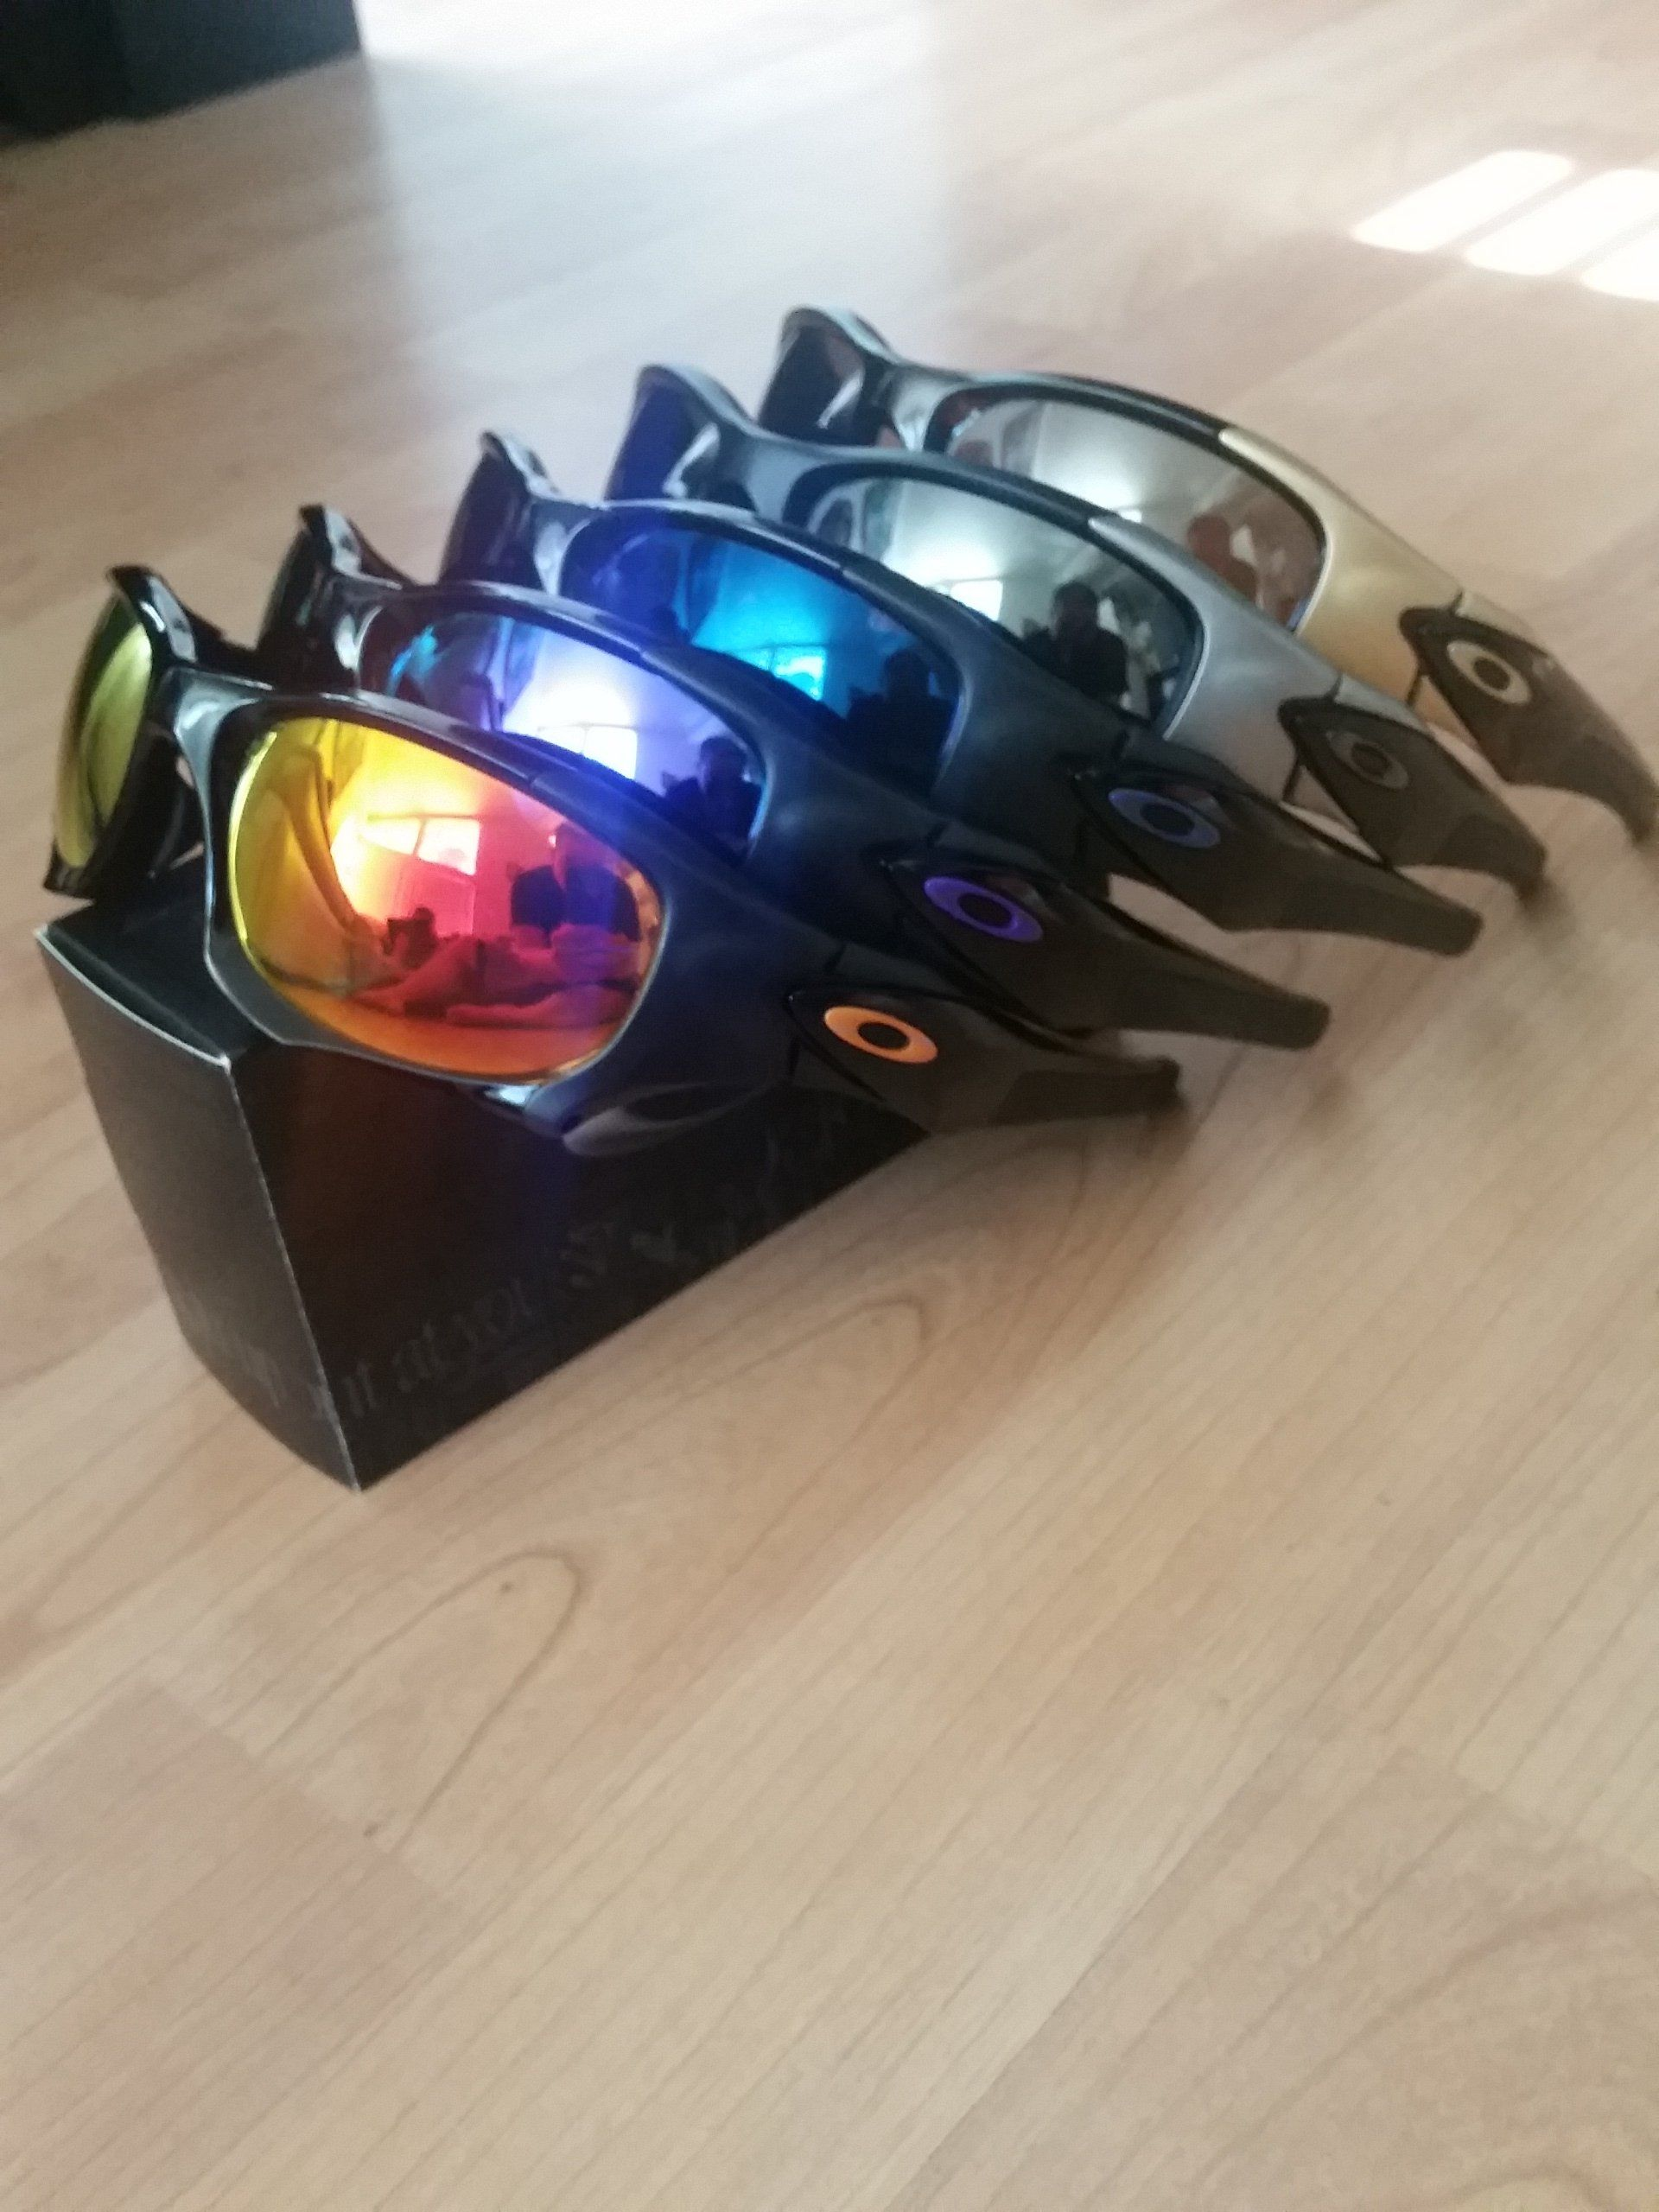 do oakley glasses come with a case  #oakley #pitboss #custom #lenses #sunglasses #elite #collection #oakleyforum